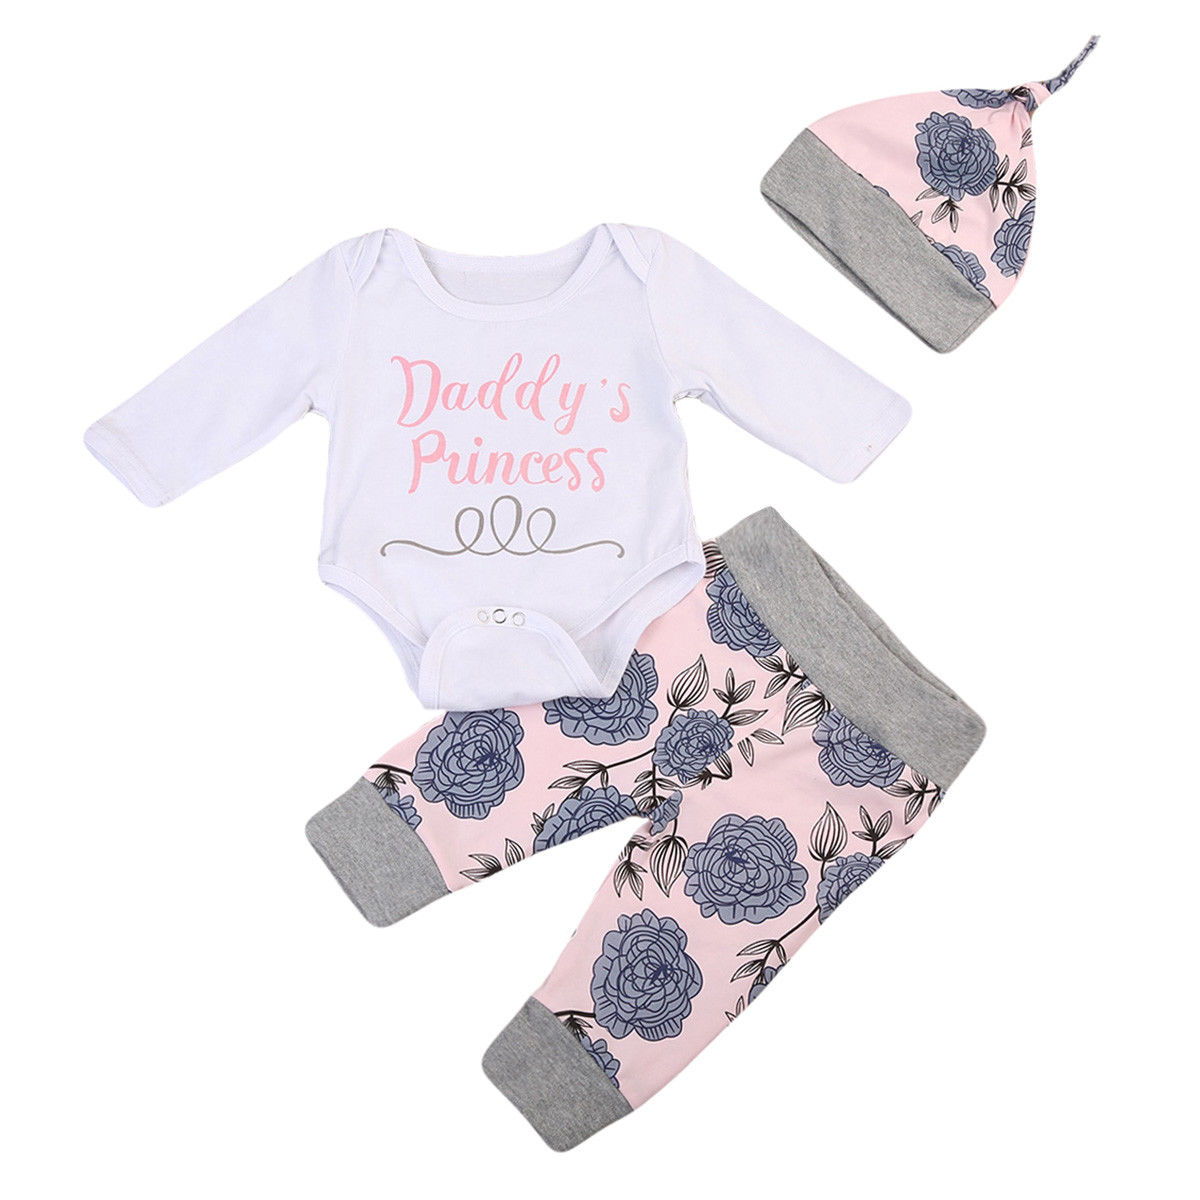 2017 New Brand Newborn Infant Toddler Baby Girl Outfits Clothes Set Bodysuit Pants Leggings Hat 3Pcs Set Girl Baby Lovely Cloth